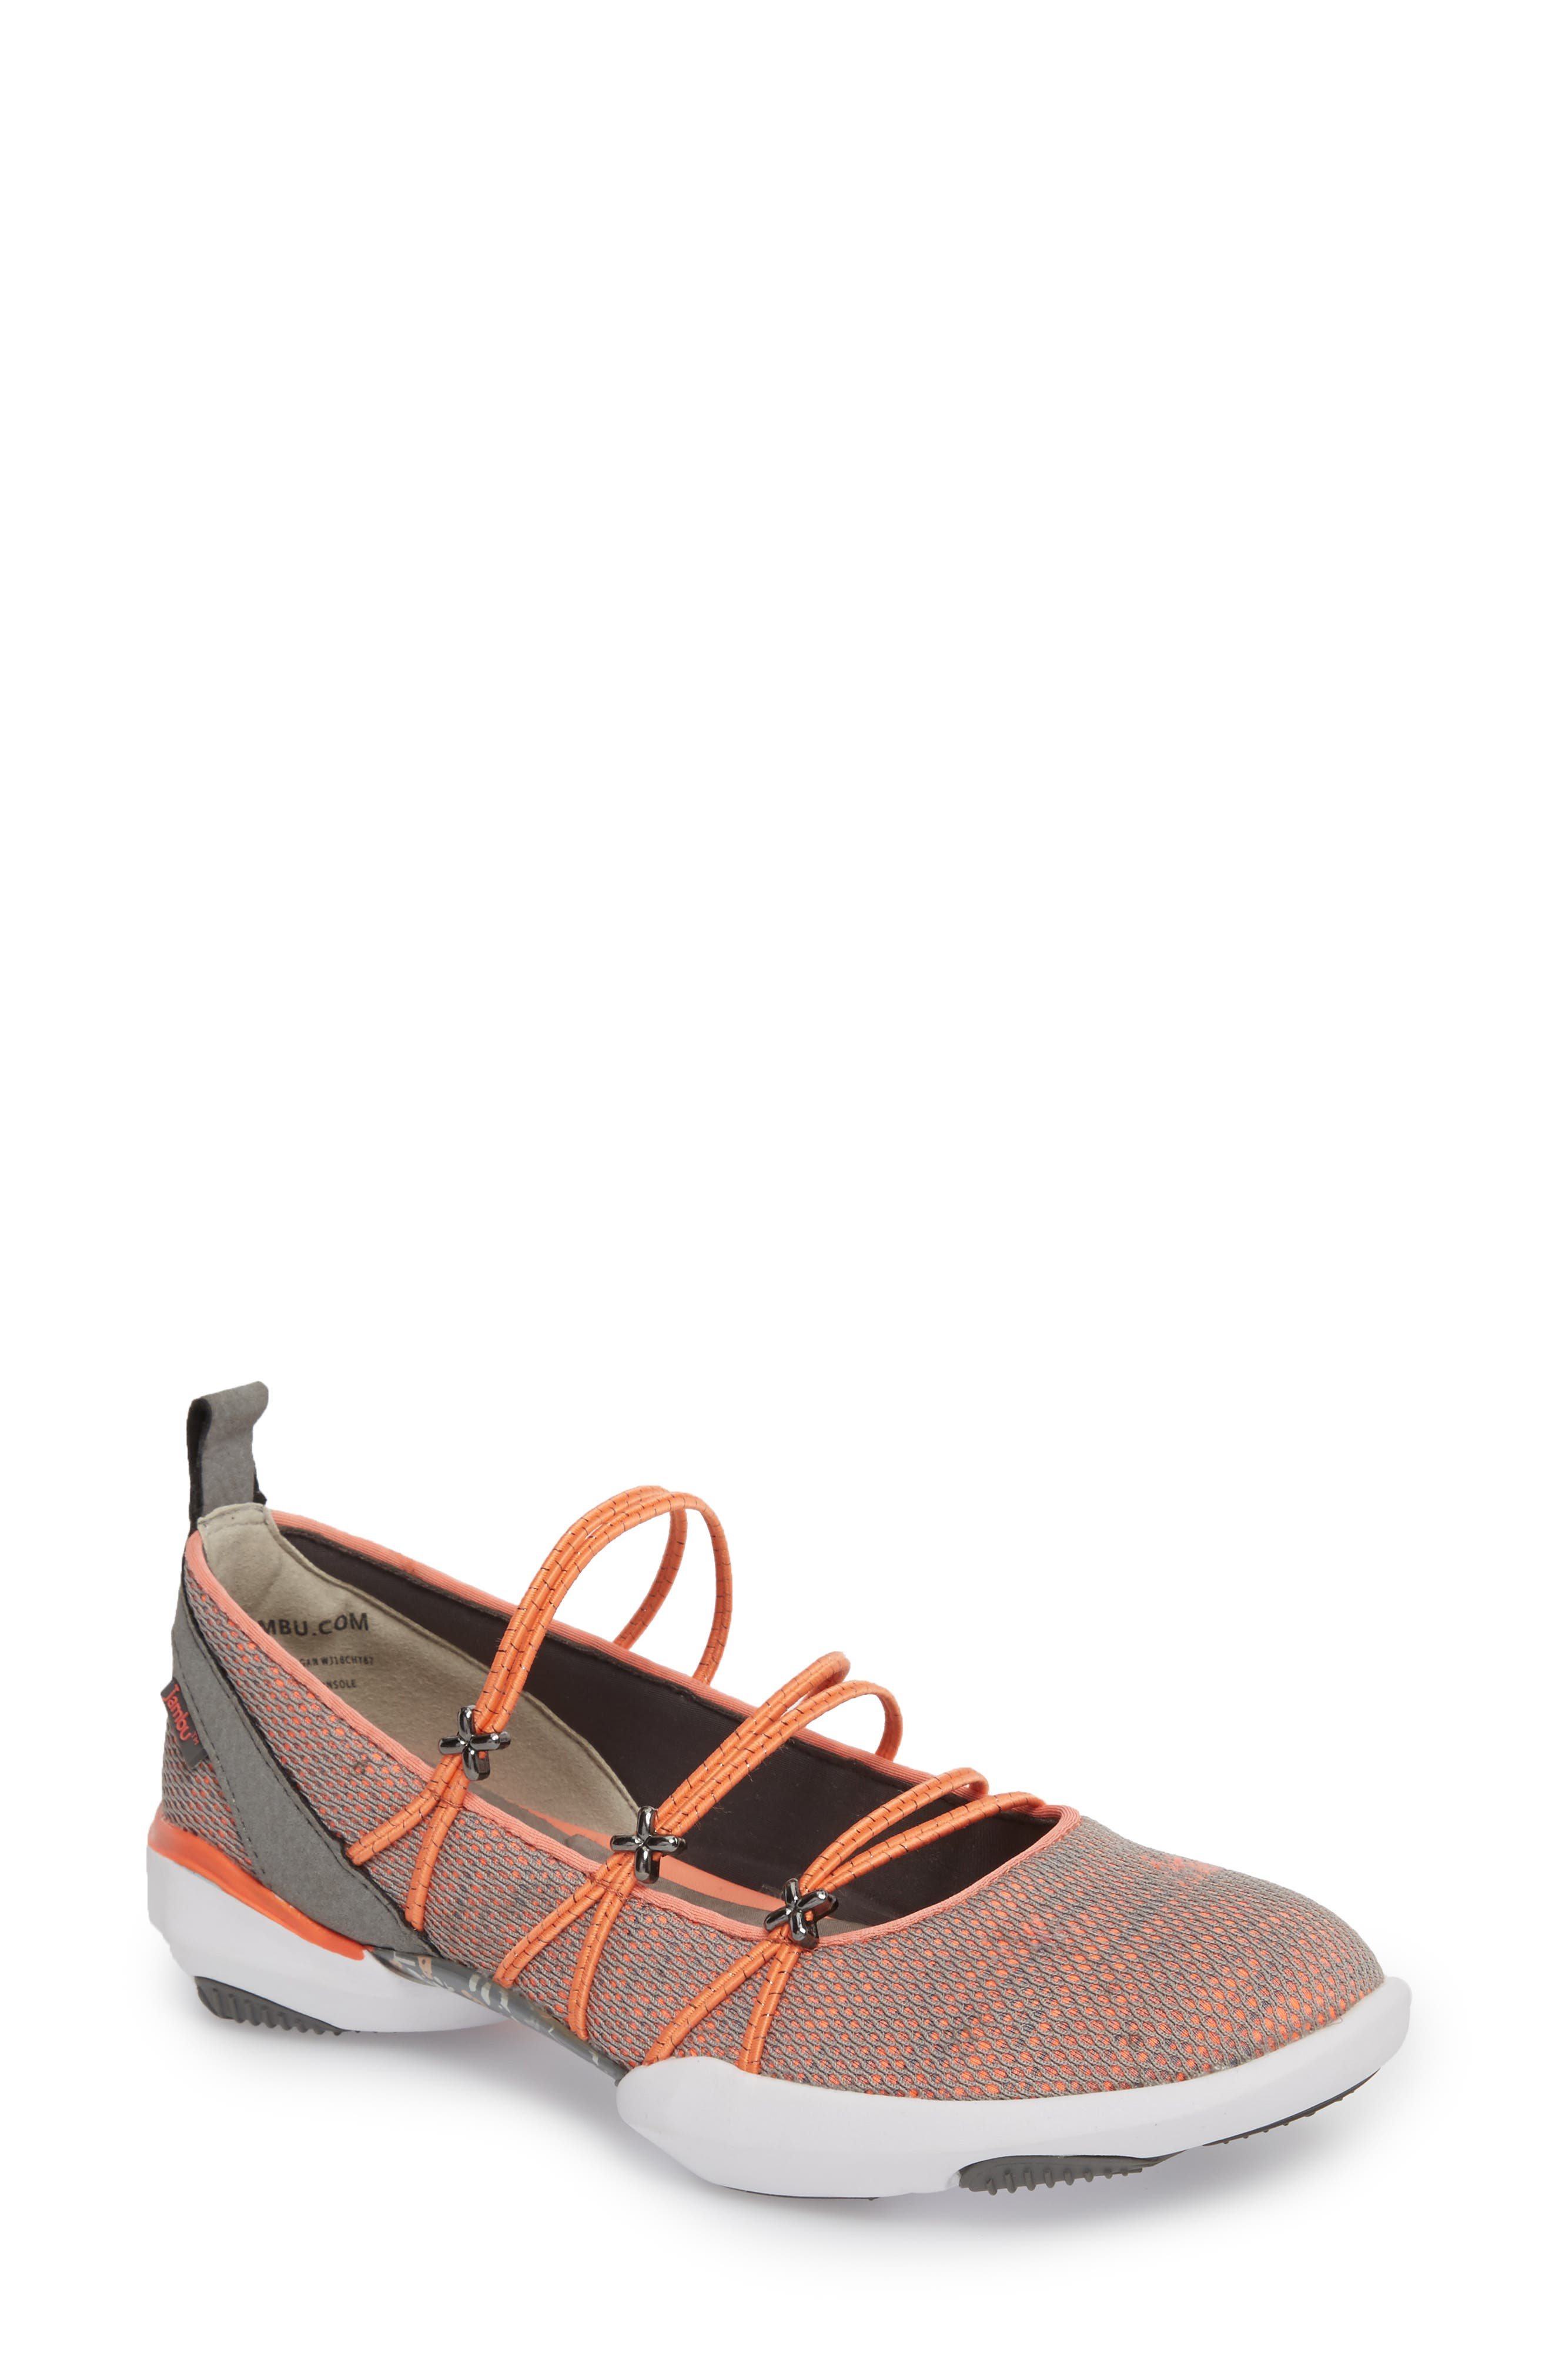 Cheyenne Water Ready Slip-on,                             Main thumbnail 1, color,                             ORANGE